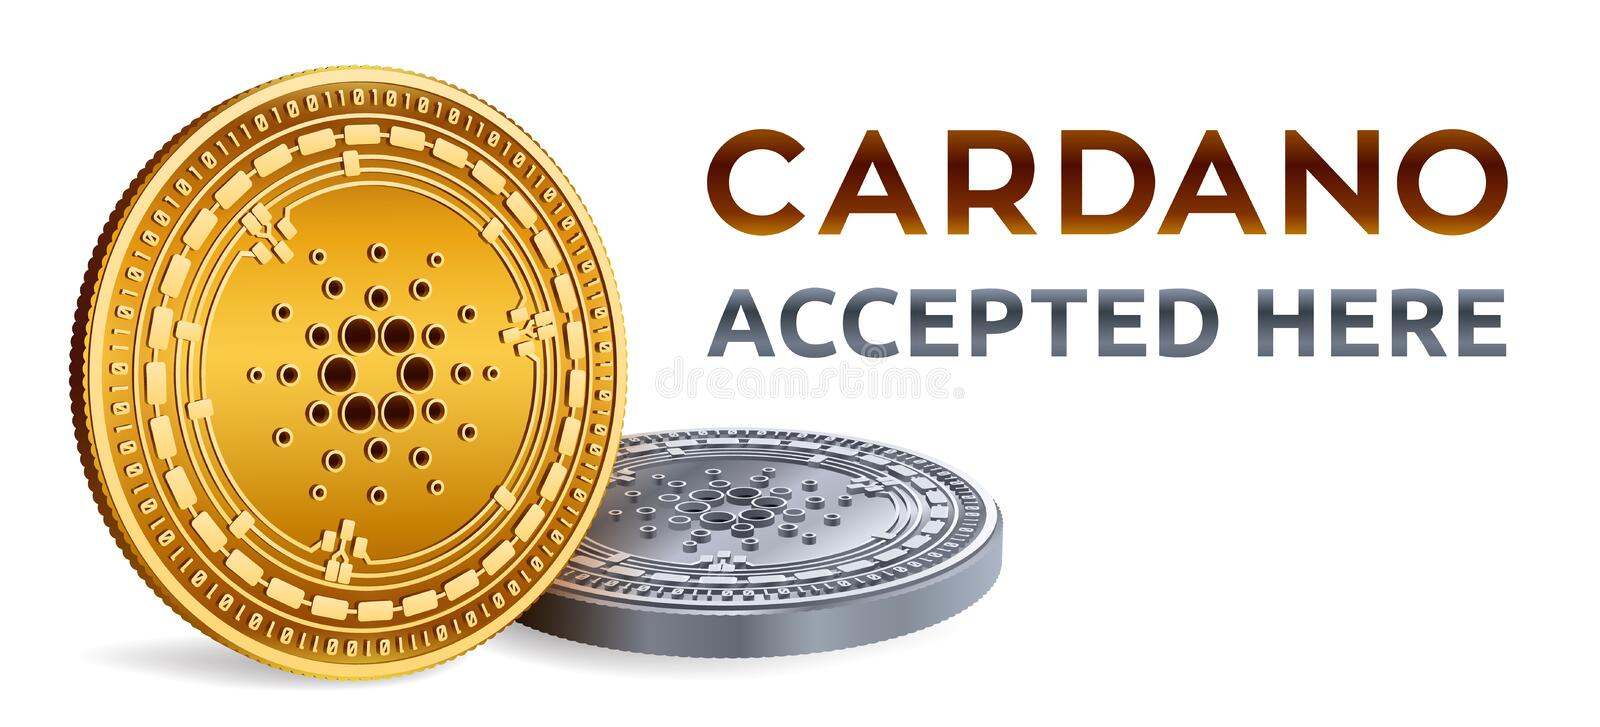 Cardano. Accepted sign emblem. Crypto currency. Golden and silver coins with Cardano symbol isolated on white background. 3D isome vector illustration